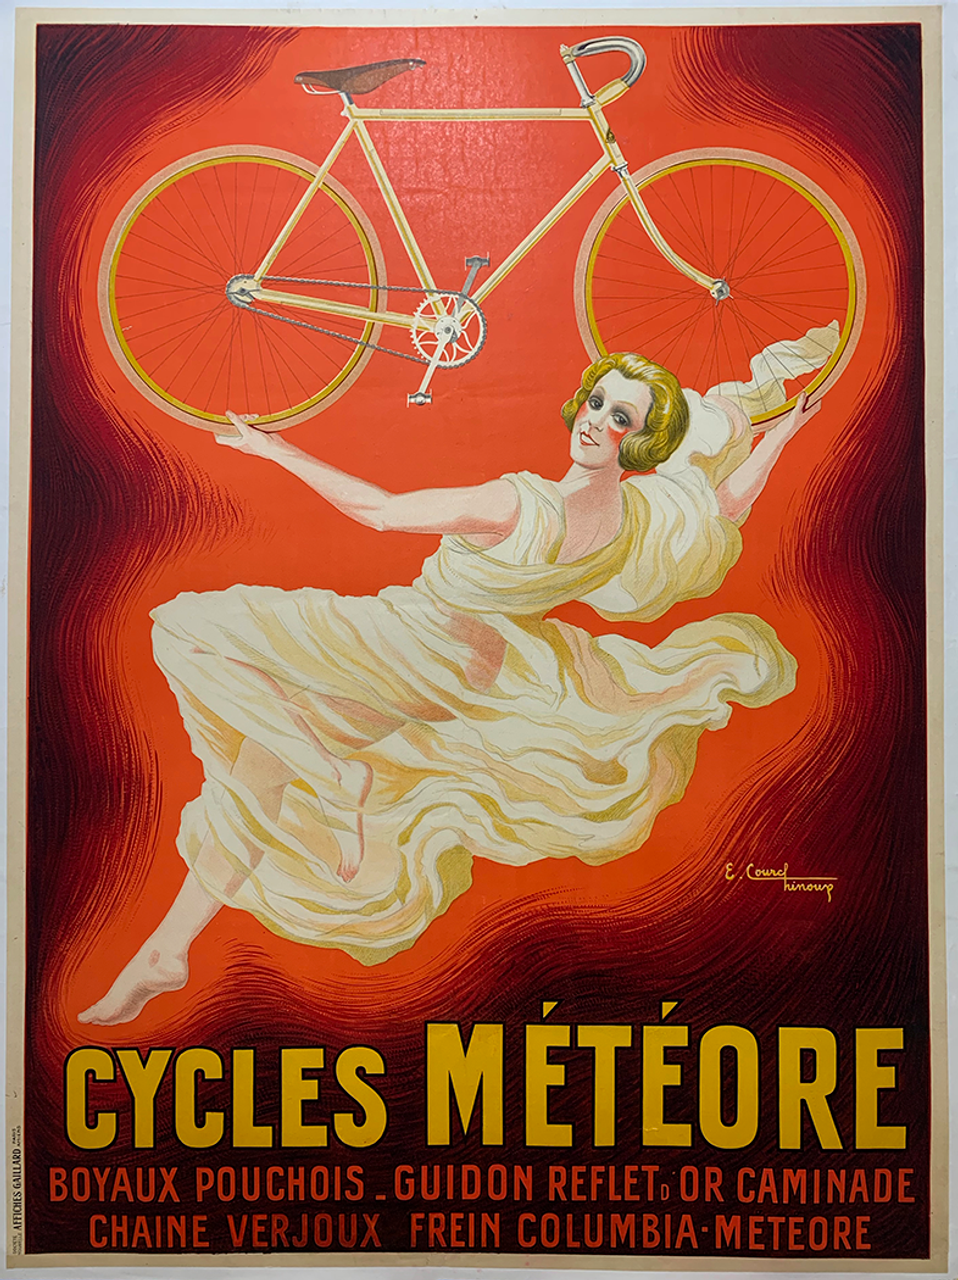 Cycles Meteore Original Vintage  Bicycle Poster by Courchinoux